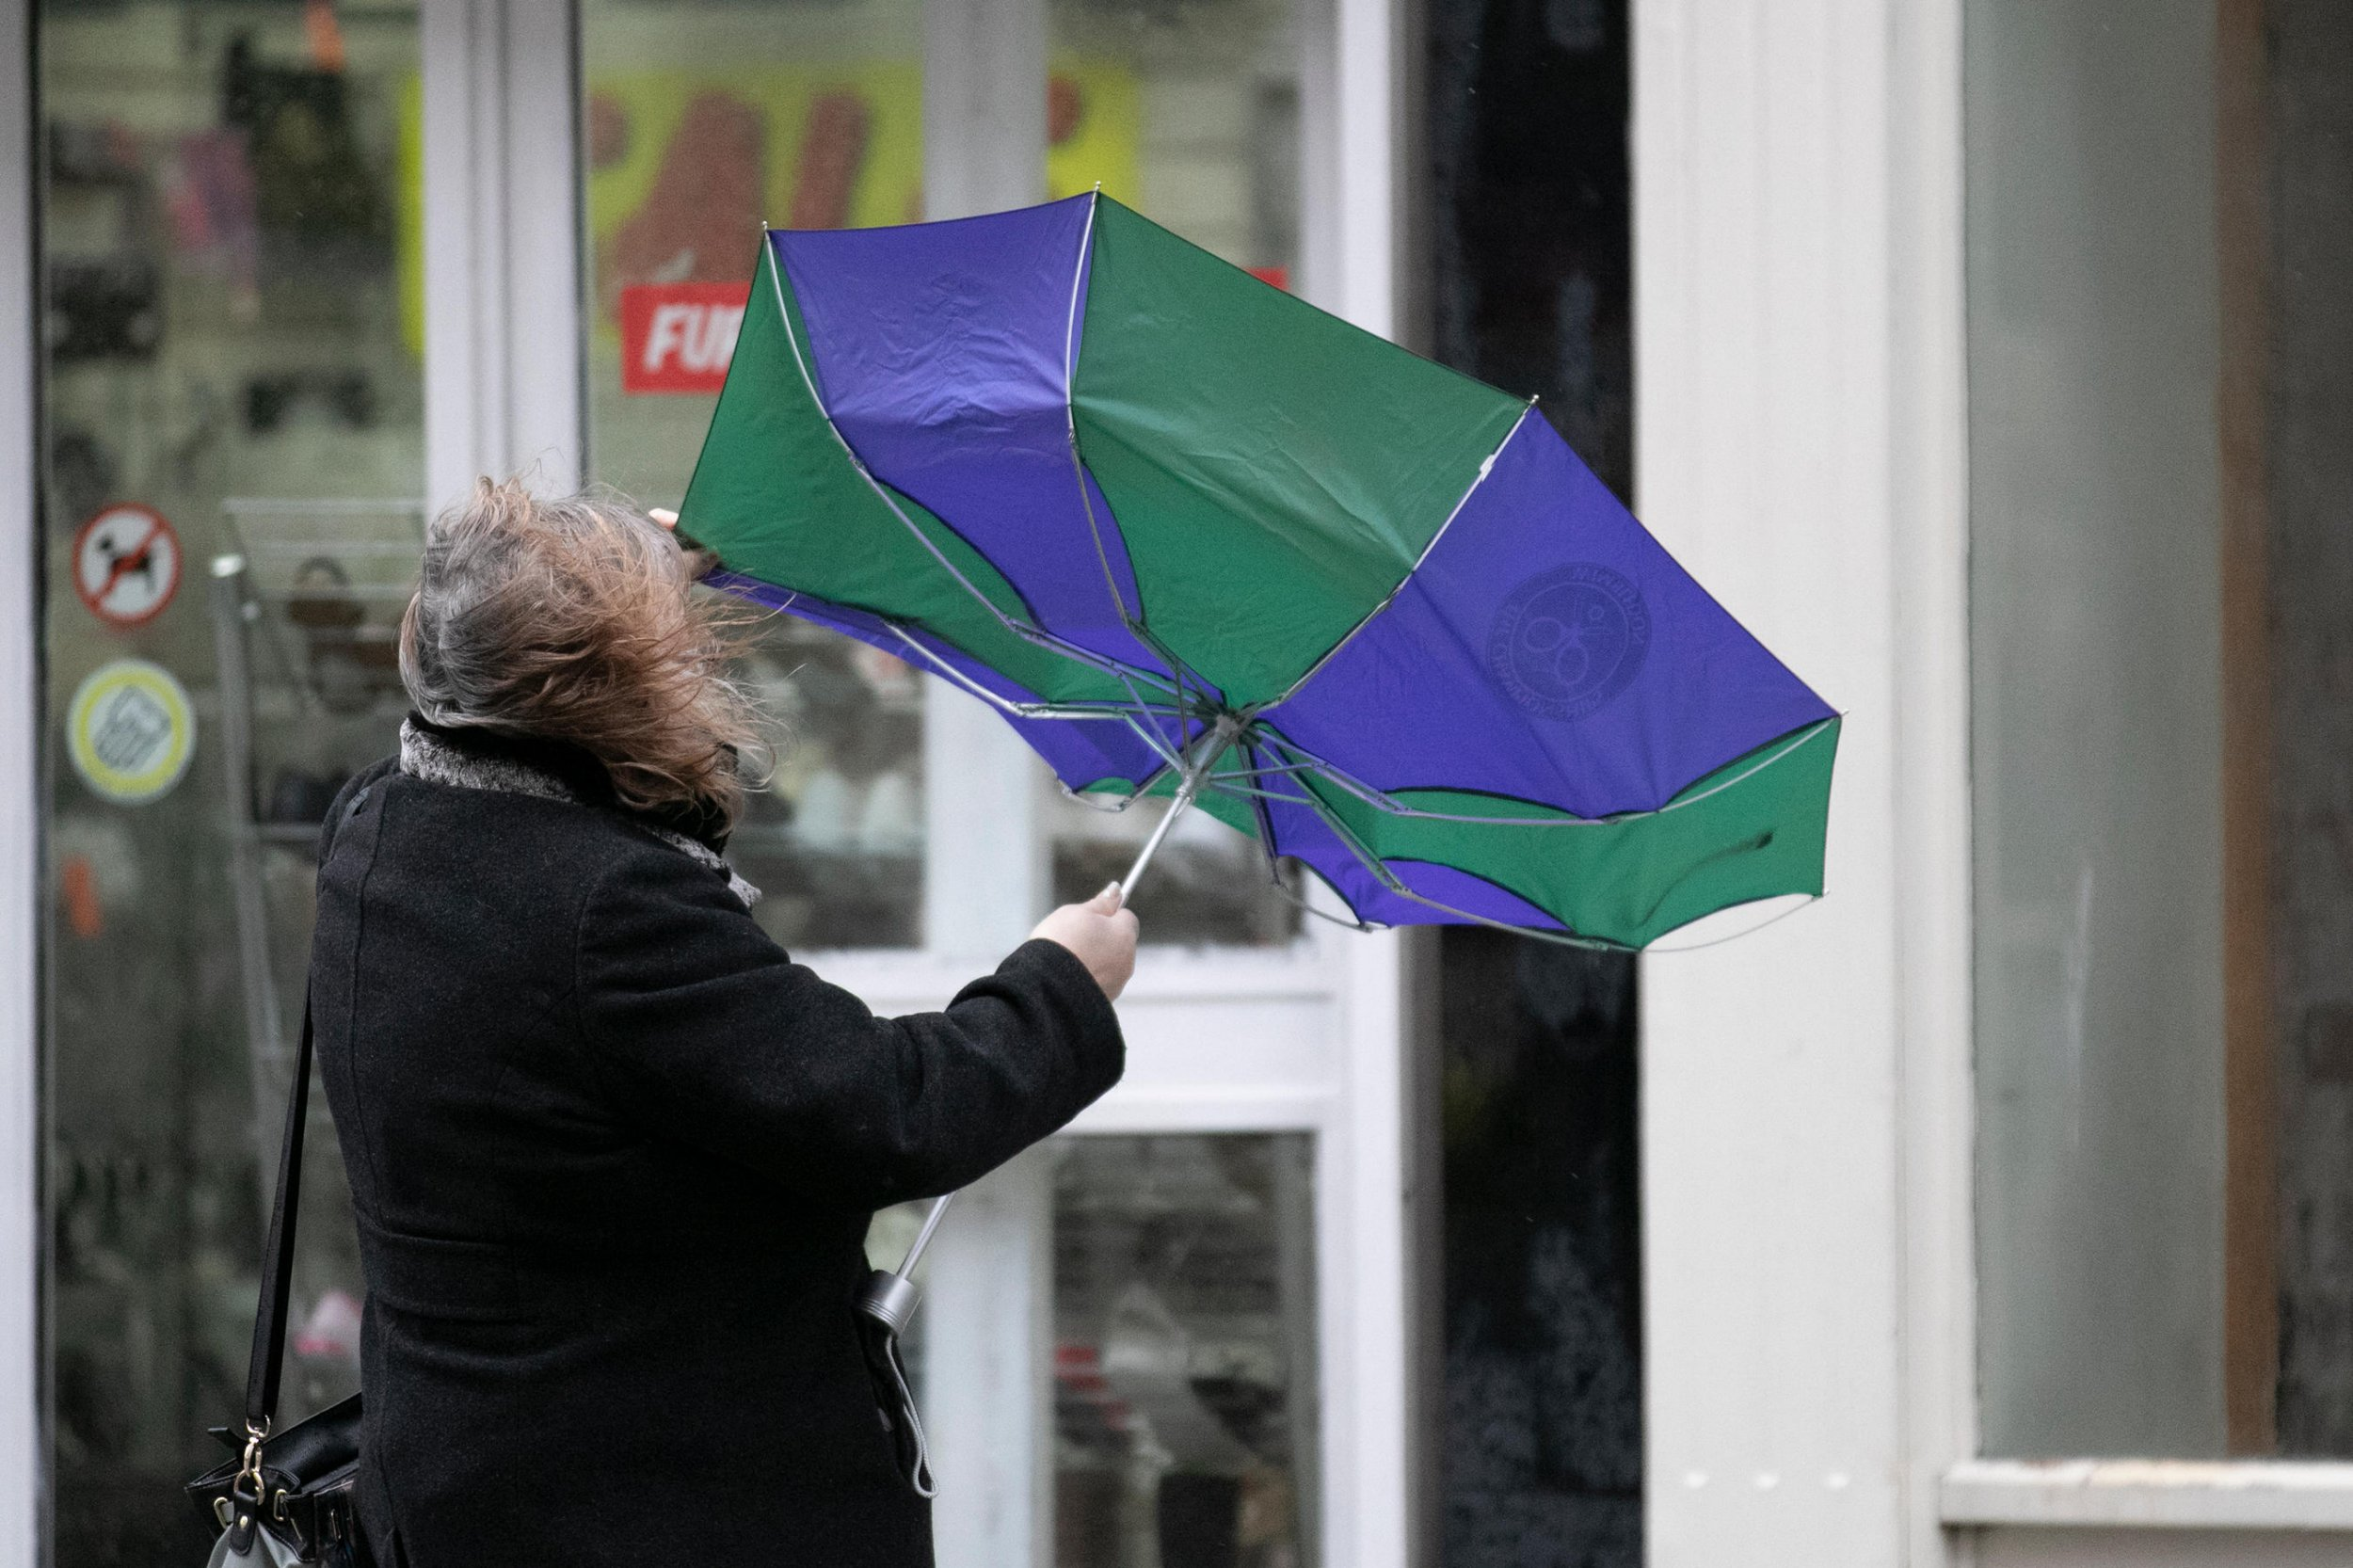 Alamy Live News. R4EC7M Southport, Lancashire, UK Weather. 27th Nov, 2018. Cold wet windy day in the town centre, with further heavy rain and strong winds forecast. Credit: MediaWorldImages/AlamyLiveNews. This is an Alamy Live News image and may not be part of your current Alamy deal . If you are unsure, please contact our sales team to check.